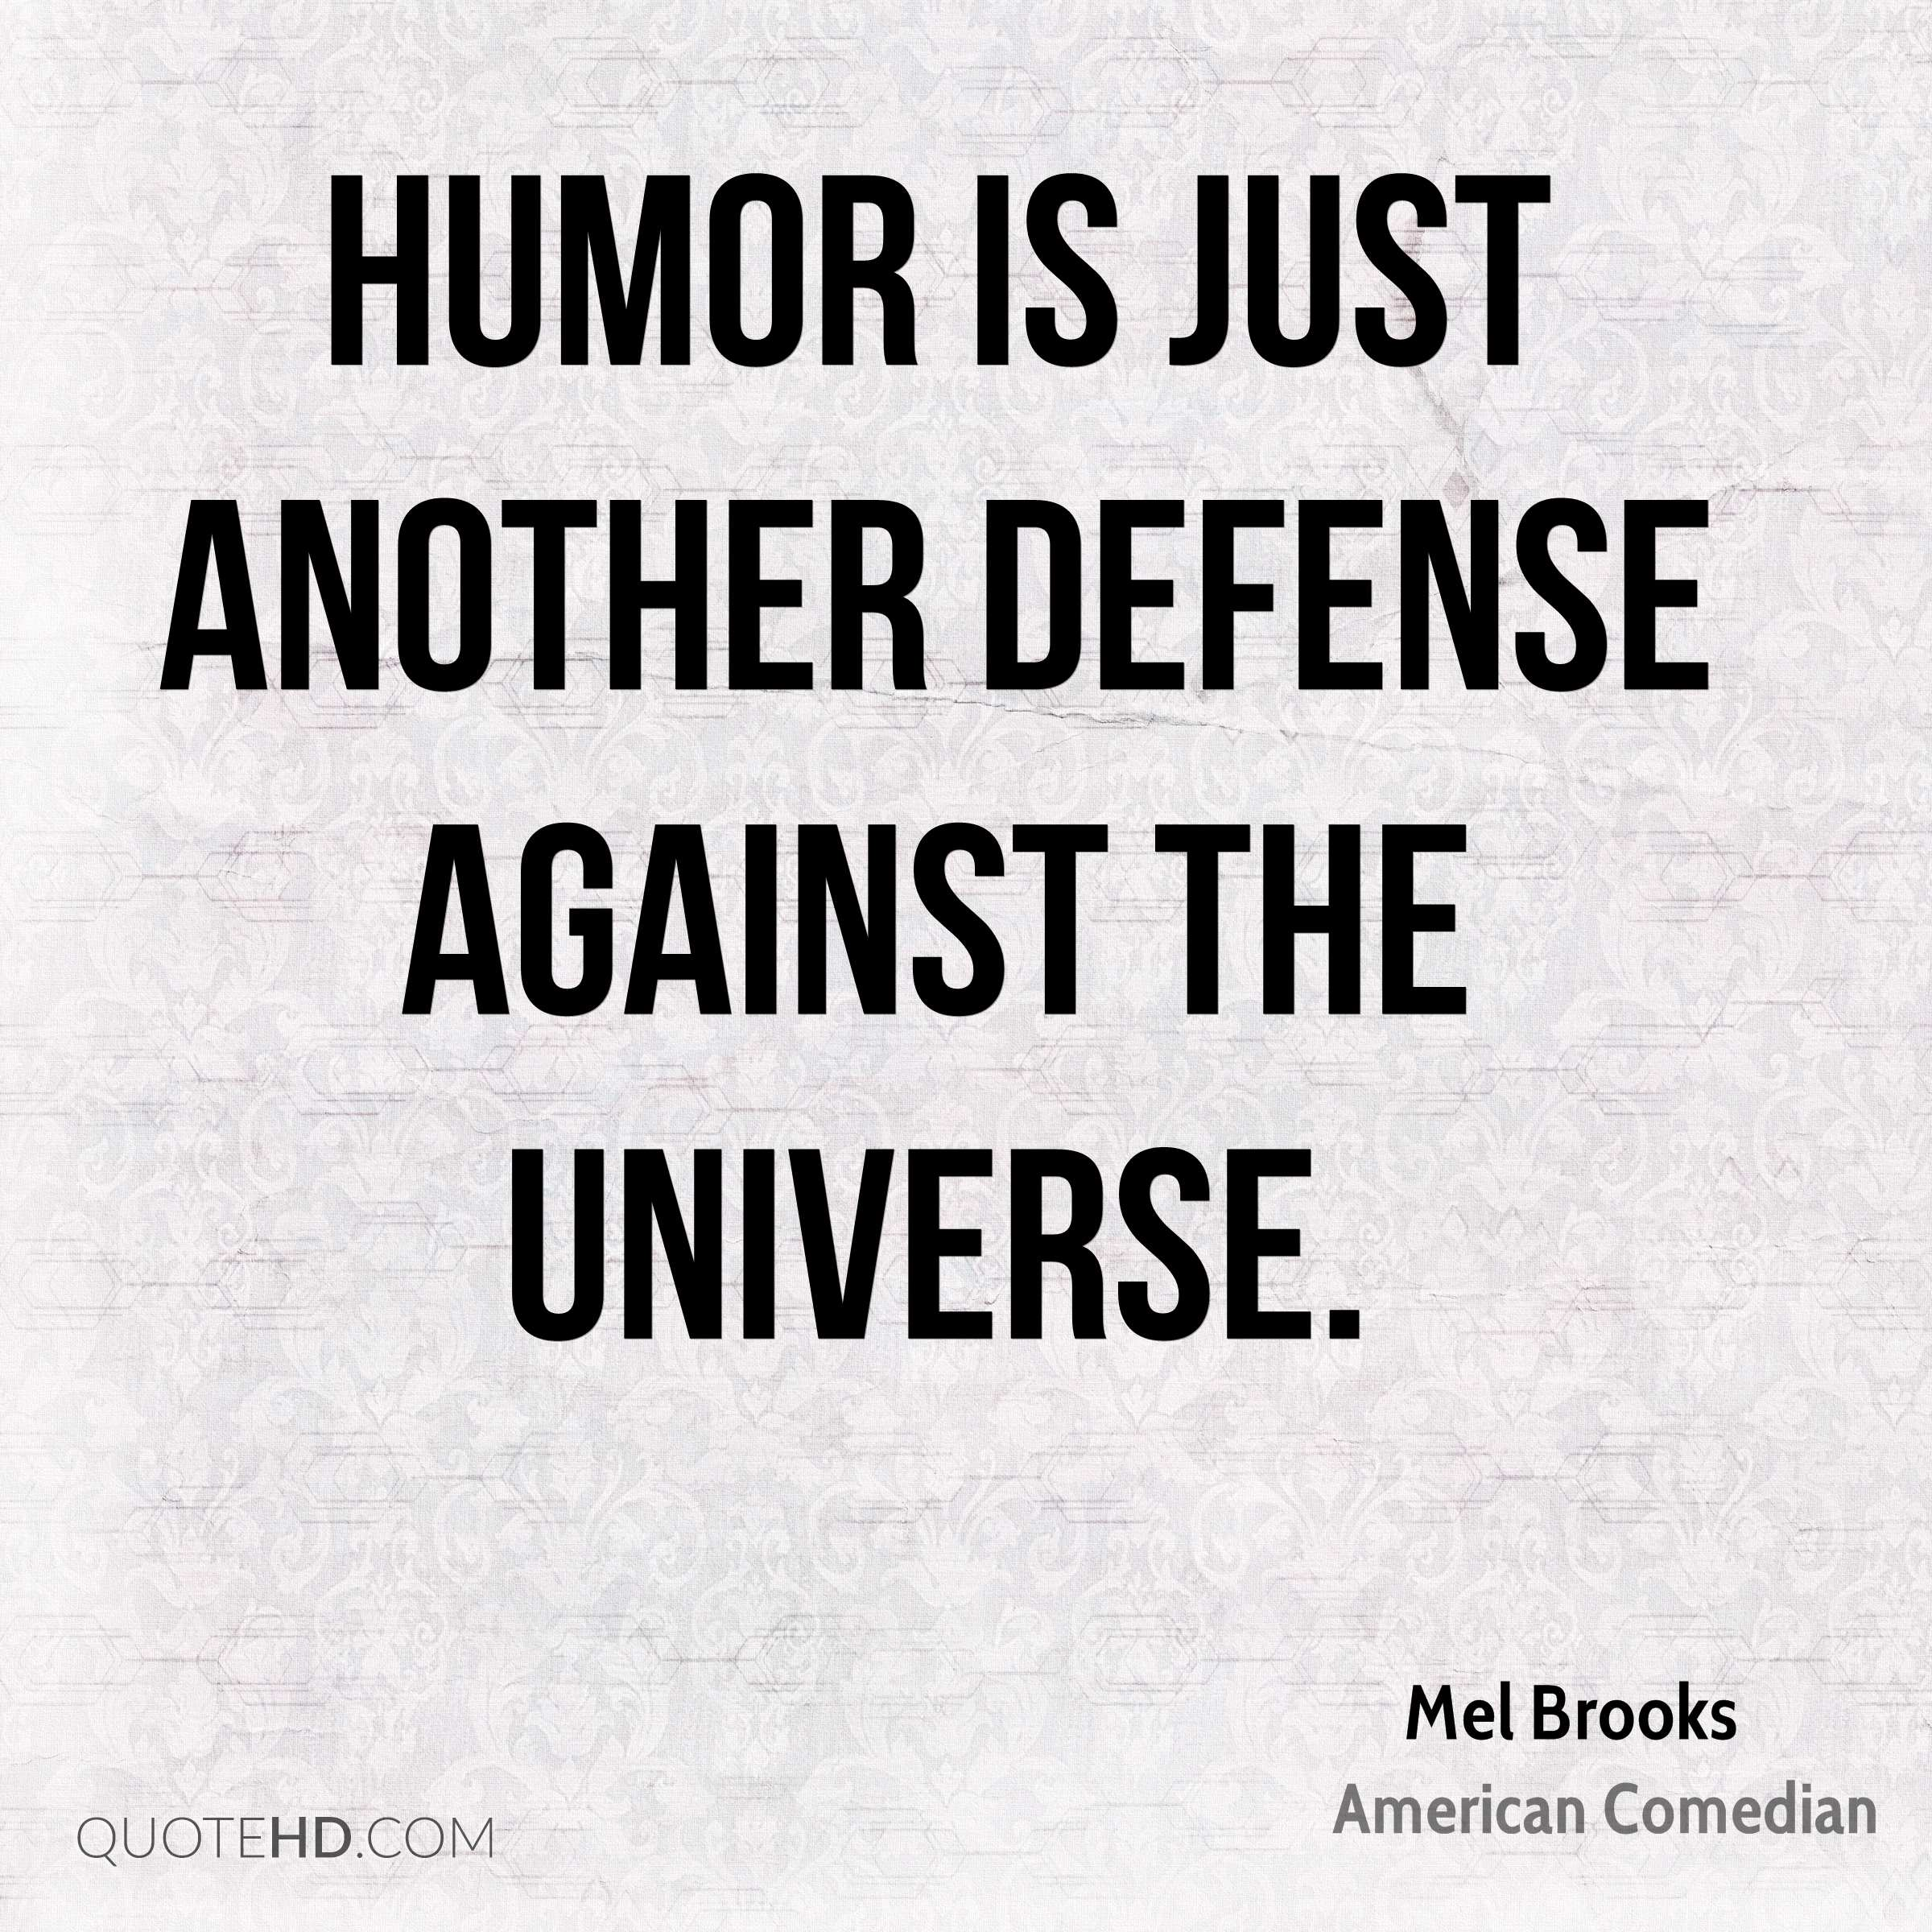 Humor is just another defense against the universe.